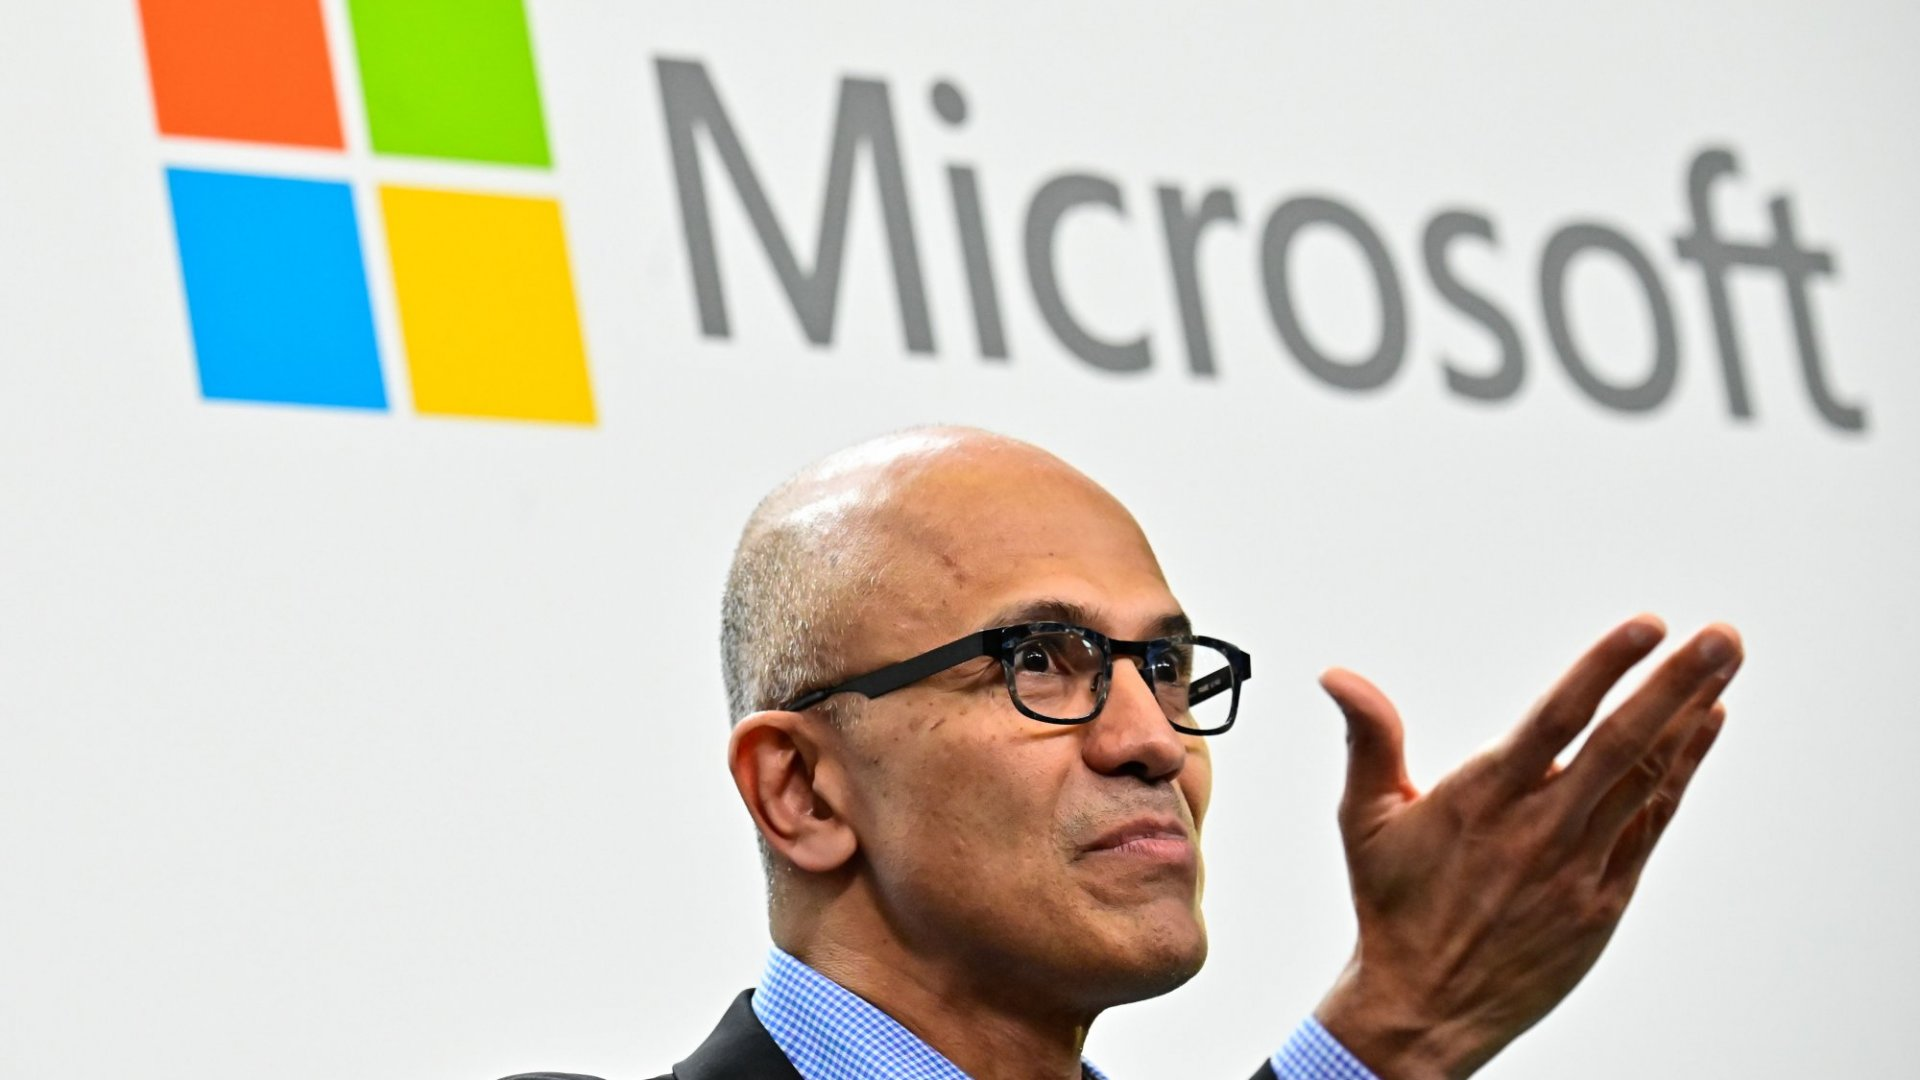 Microsoft Just Announced These 3 Cool Things That Will Impact Your Business